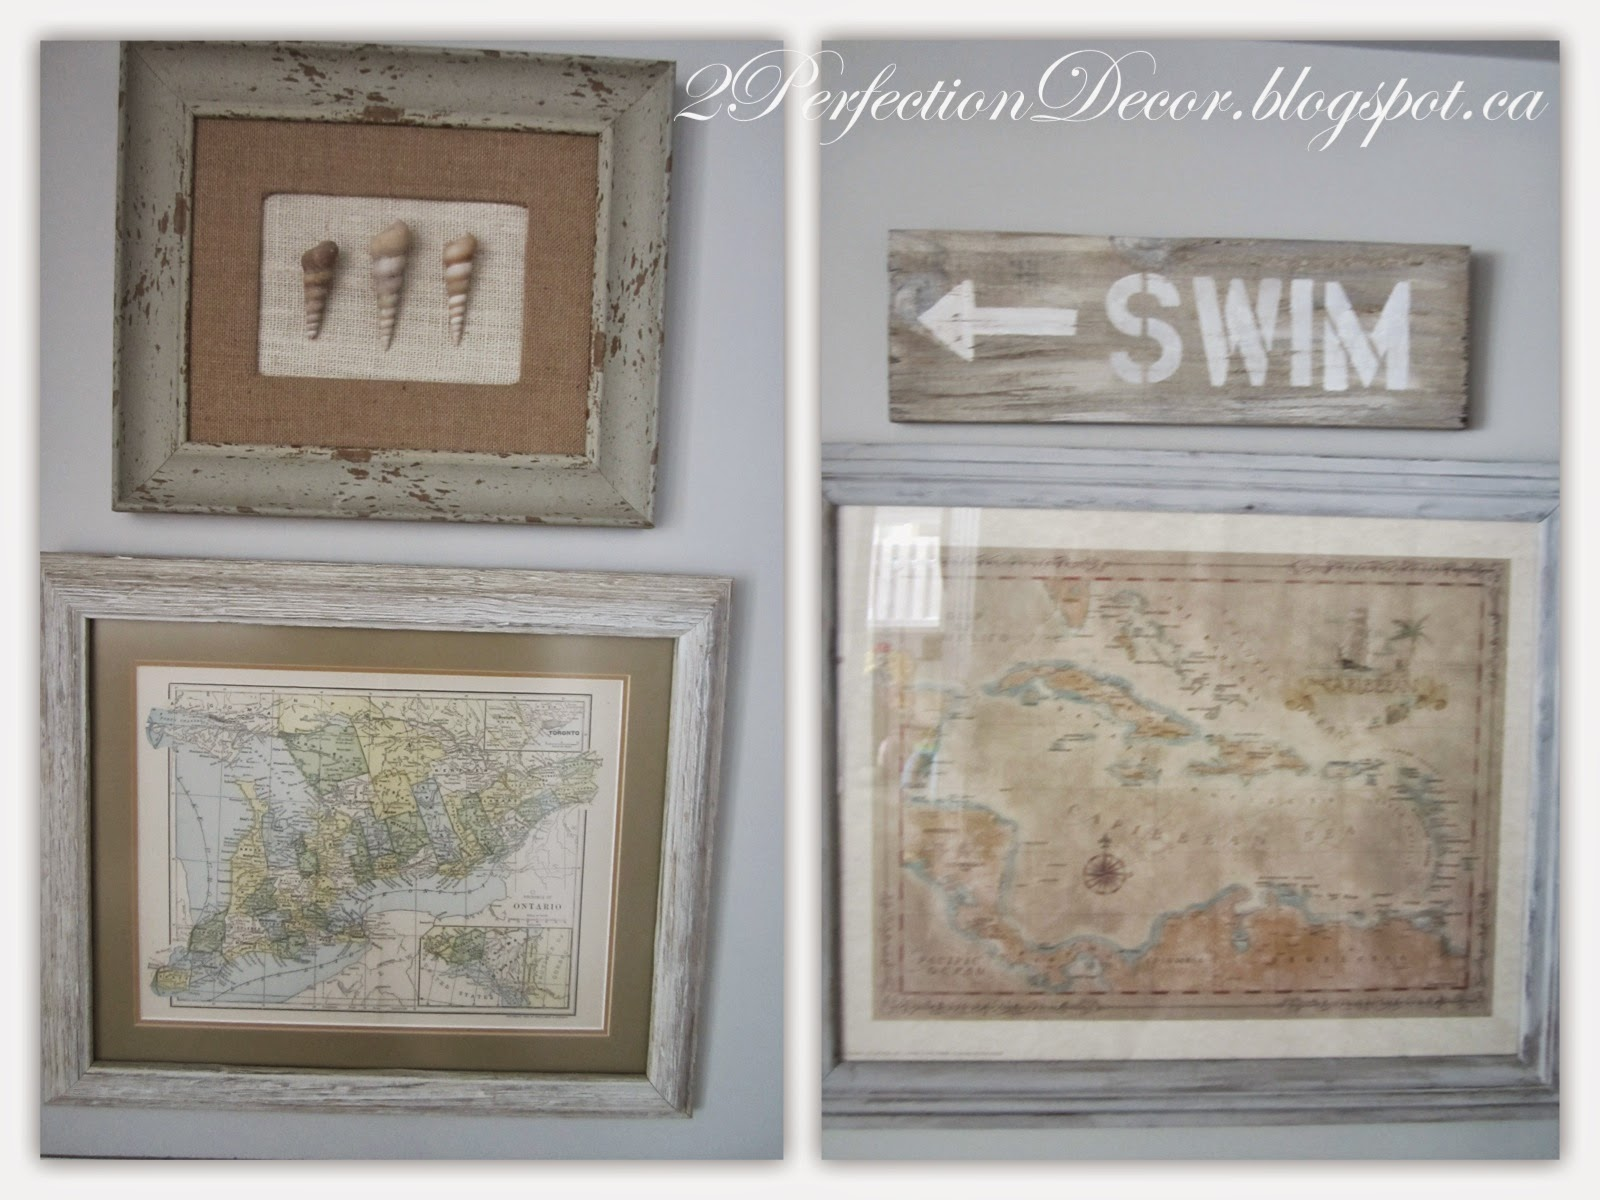 2perfection Decor Basement Coastal Bathroom Reveal: 2Perfection Decor: Basement Hall Reveal